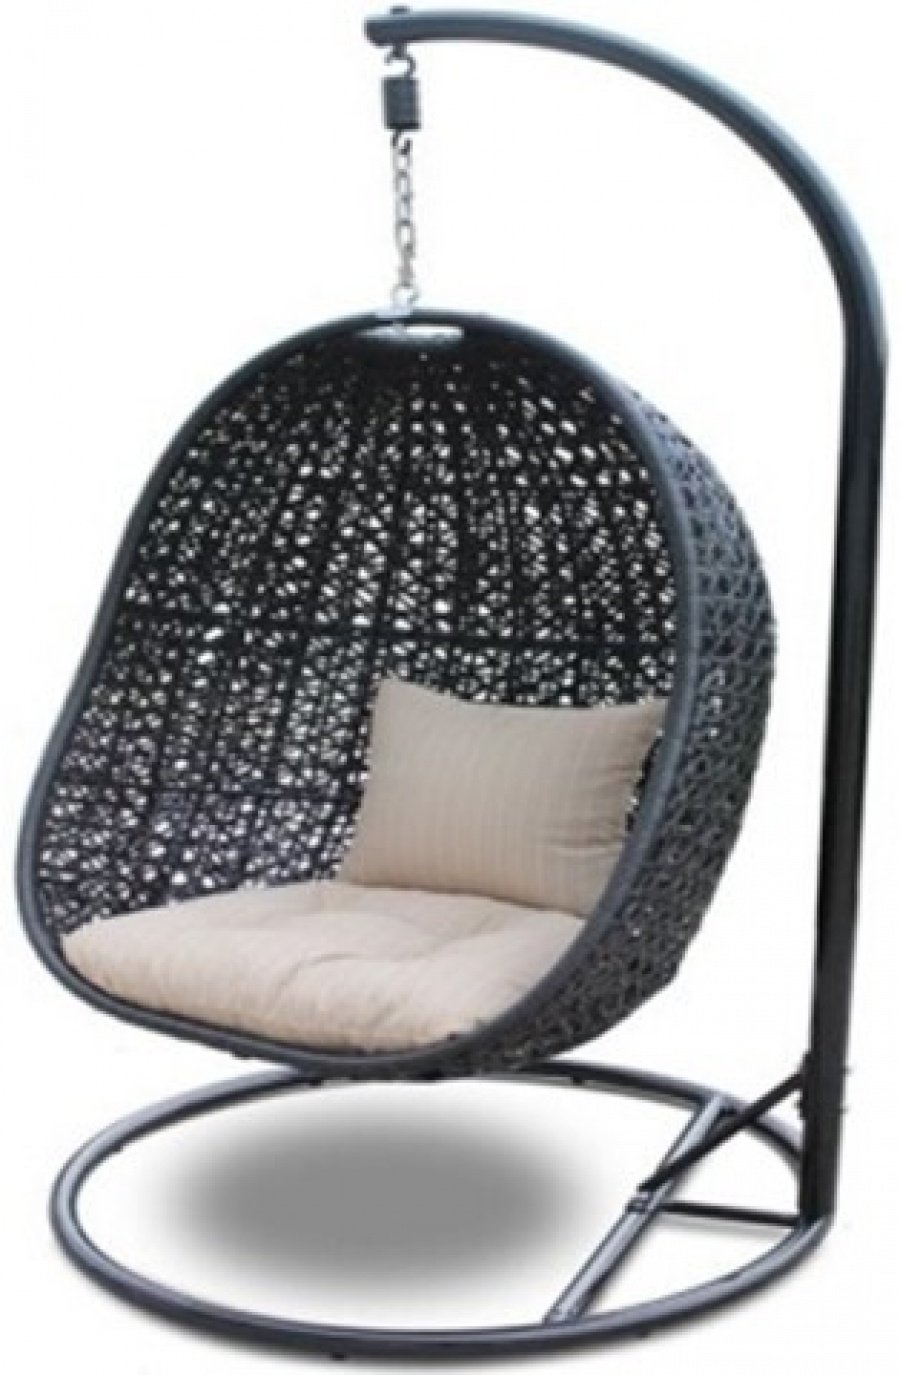 Tuin Loungeset Veiling.Eet Loungeset Great Hoge Loungeset Loungeset For Dining Grijs With